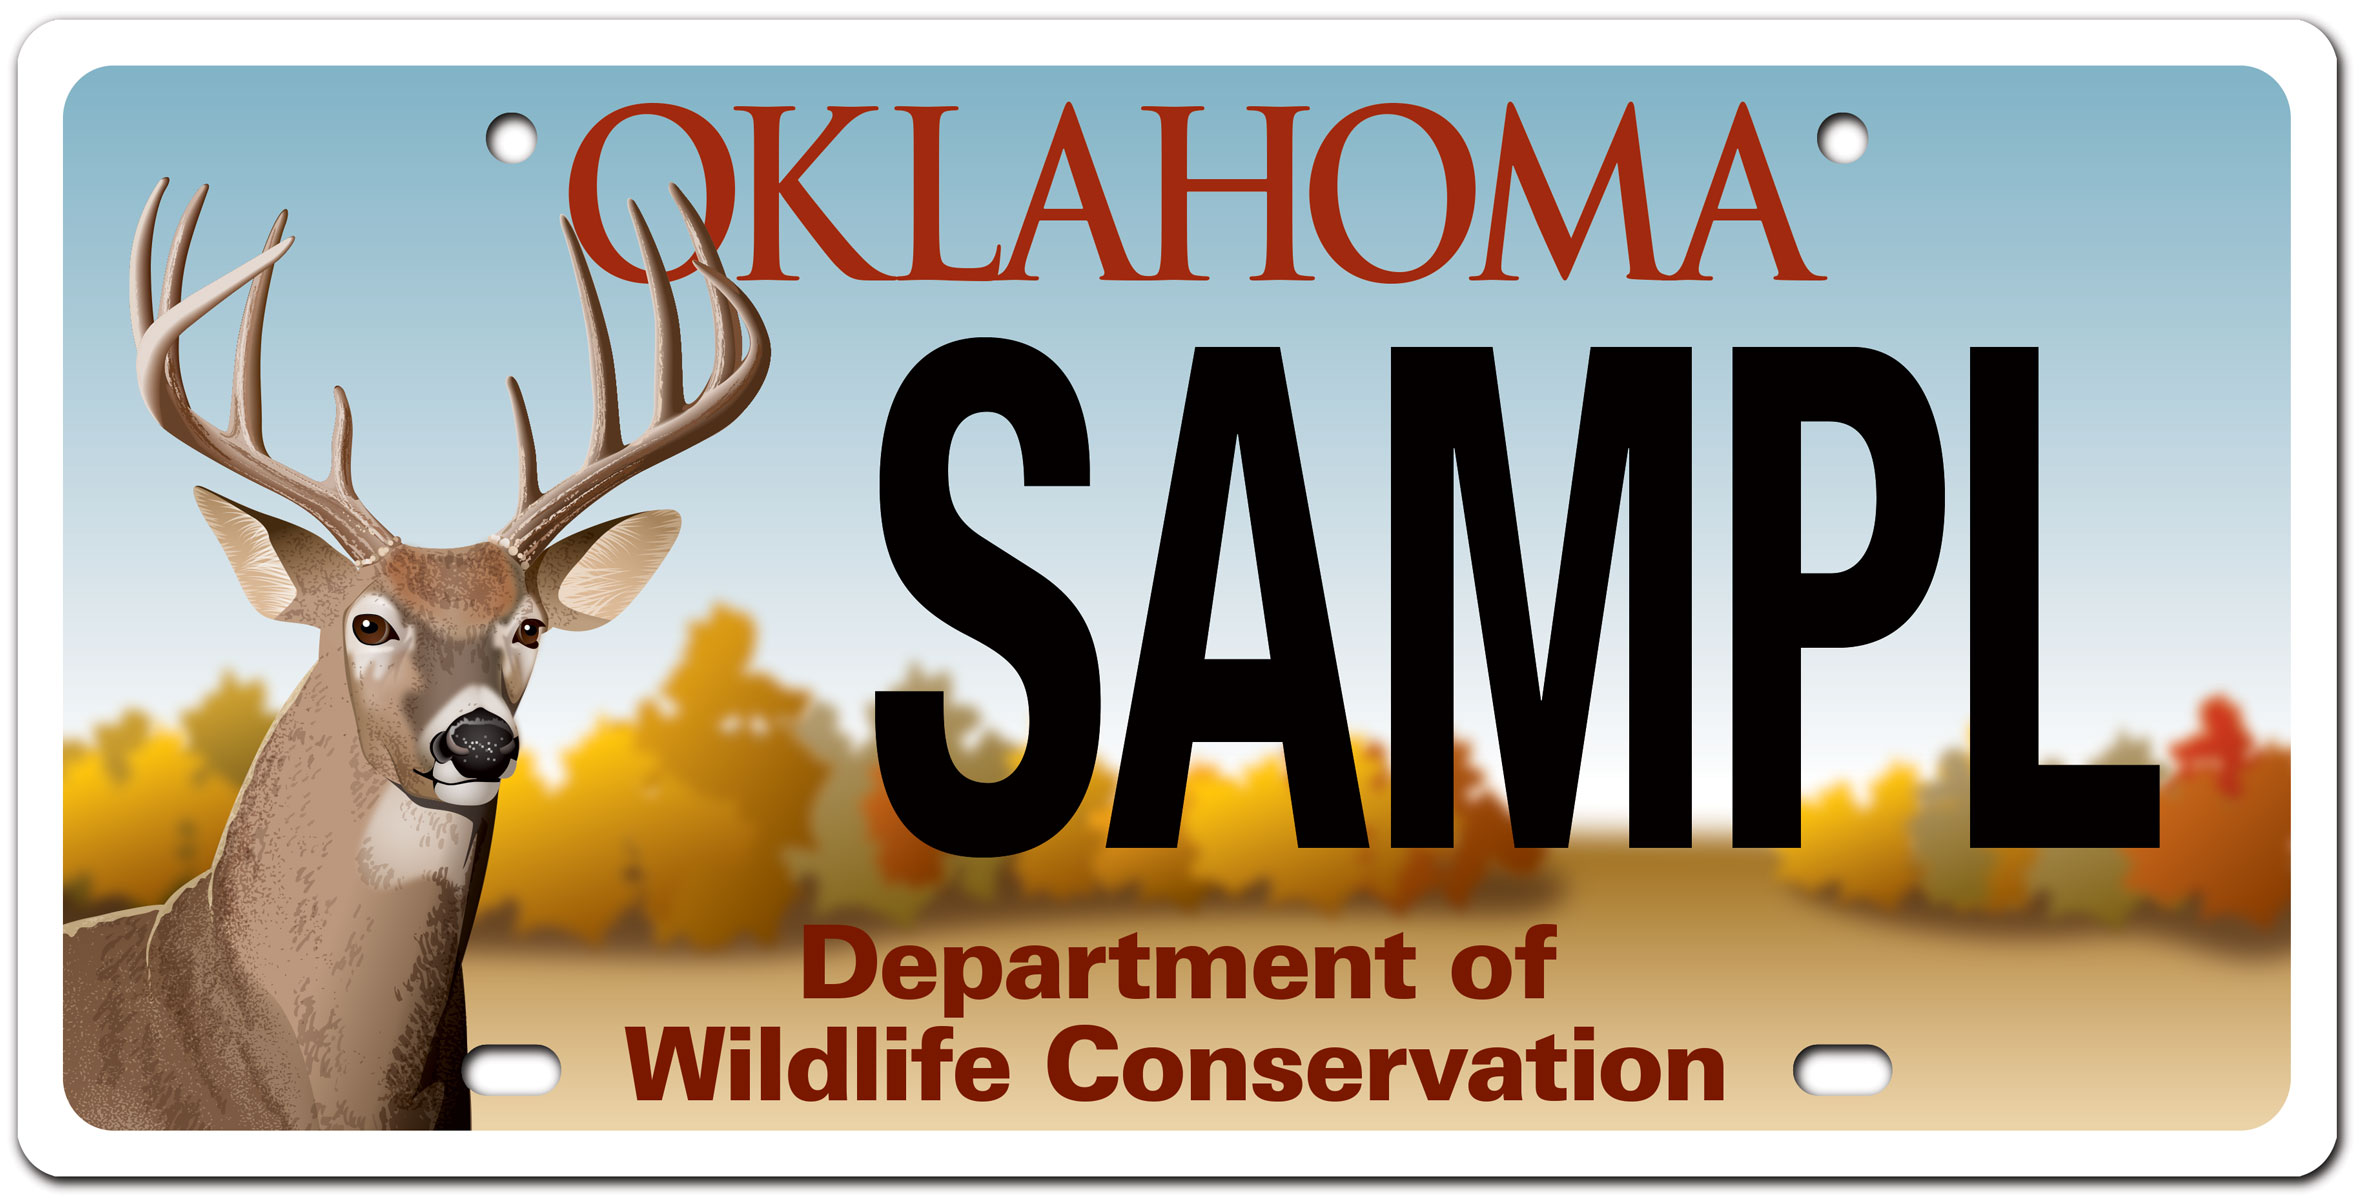 Oklahoma Wildlife whitetail buck license plate